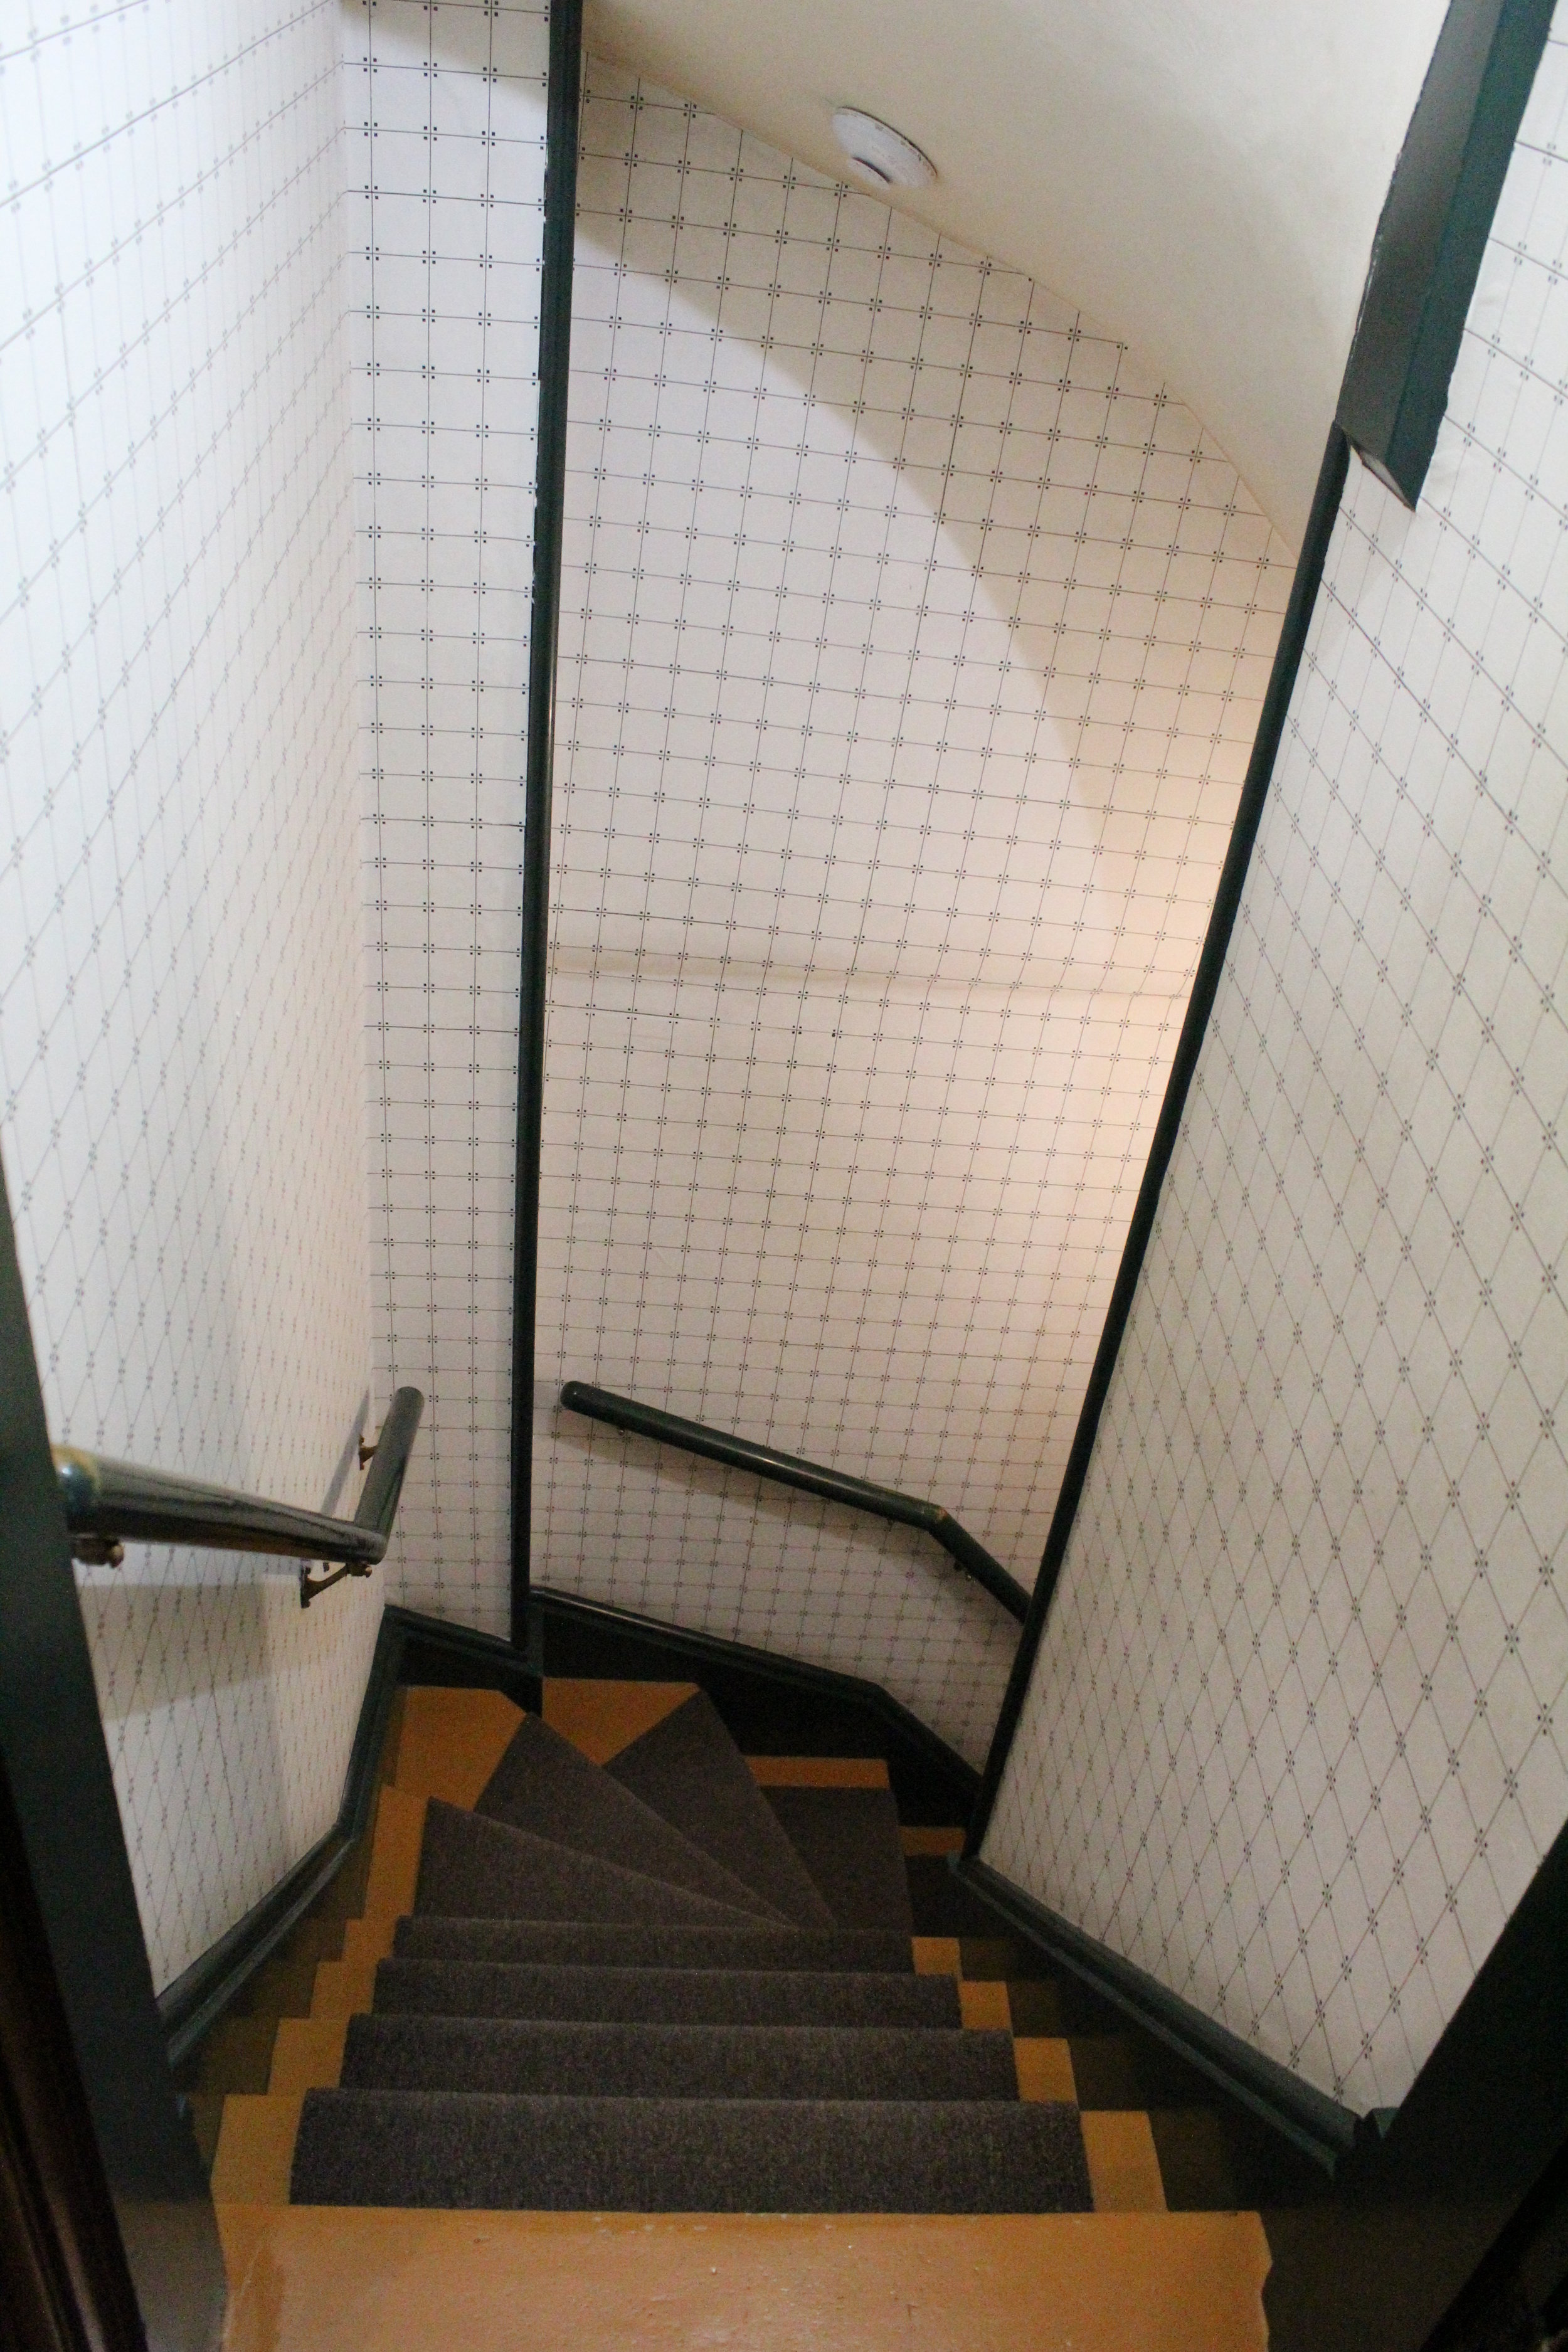 The steep, narrow servants' staircase, leading from the kitchen to the second floor.